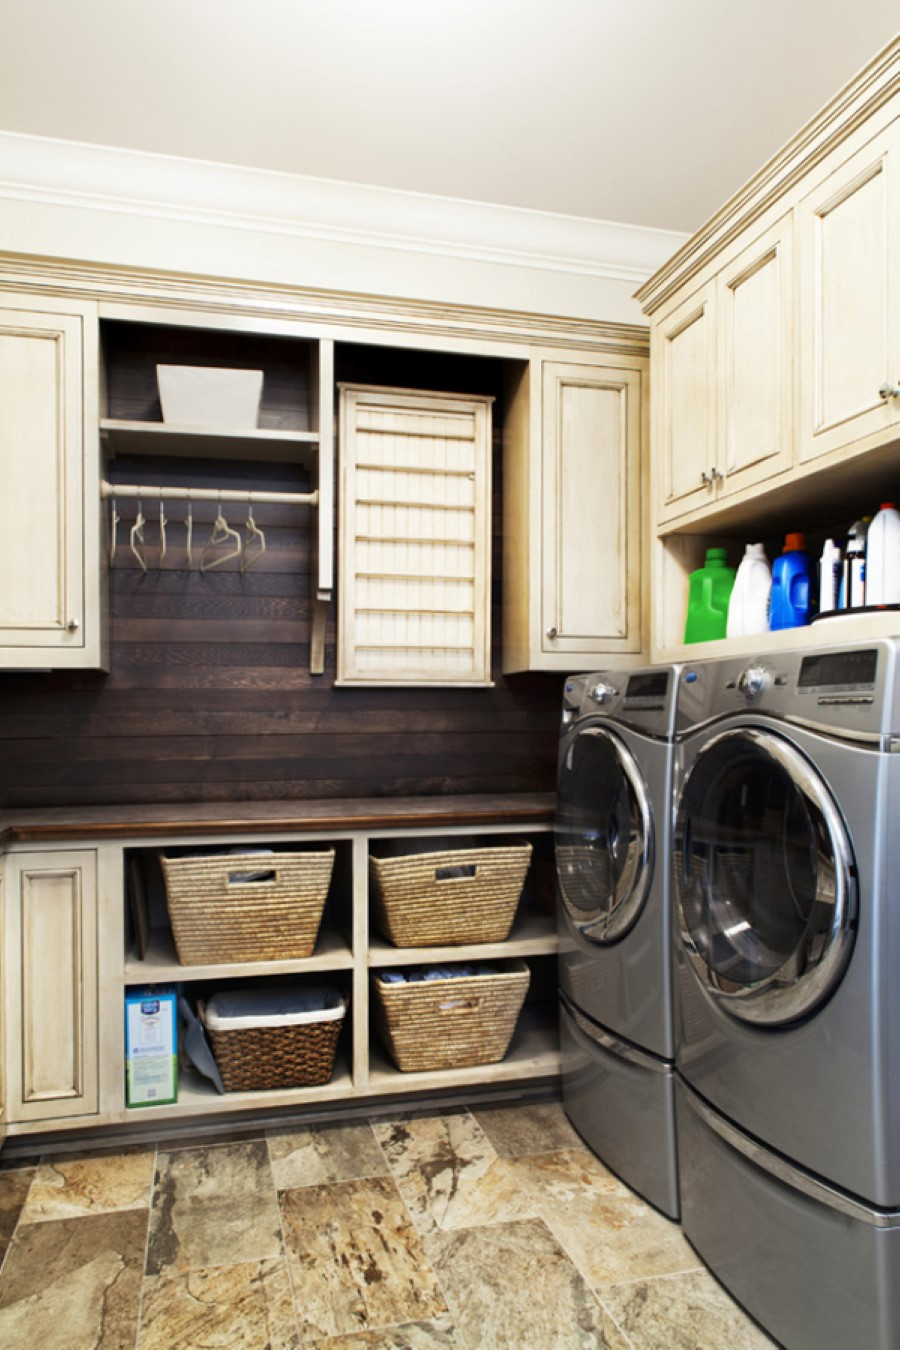 laundry basket shelves style of arrangement homesfeed on paint for laundry room floor ideas images id=87838